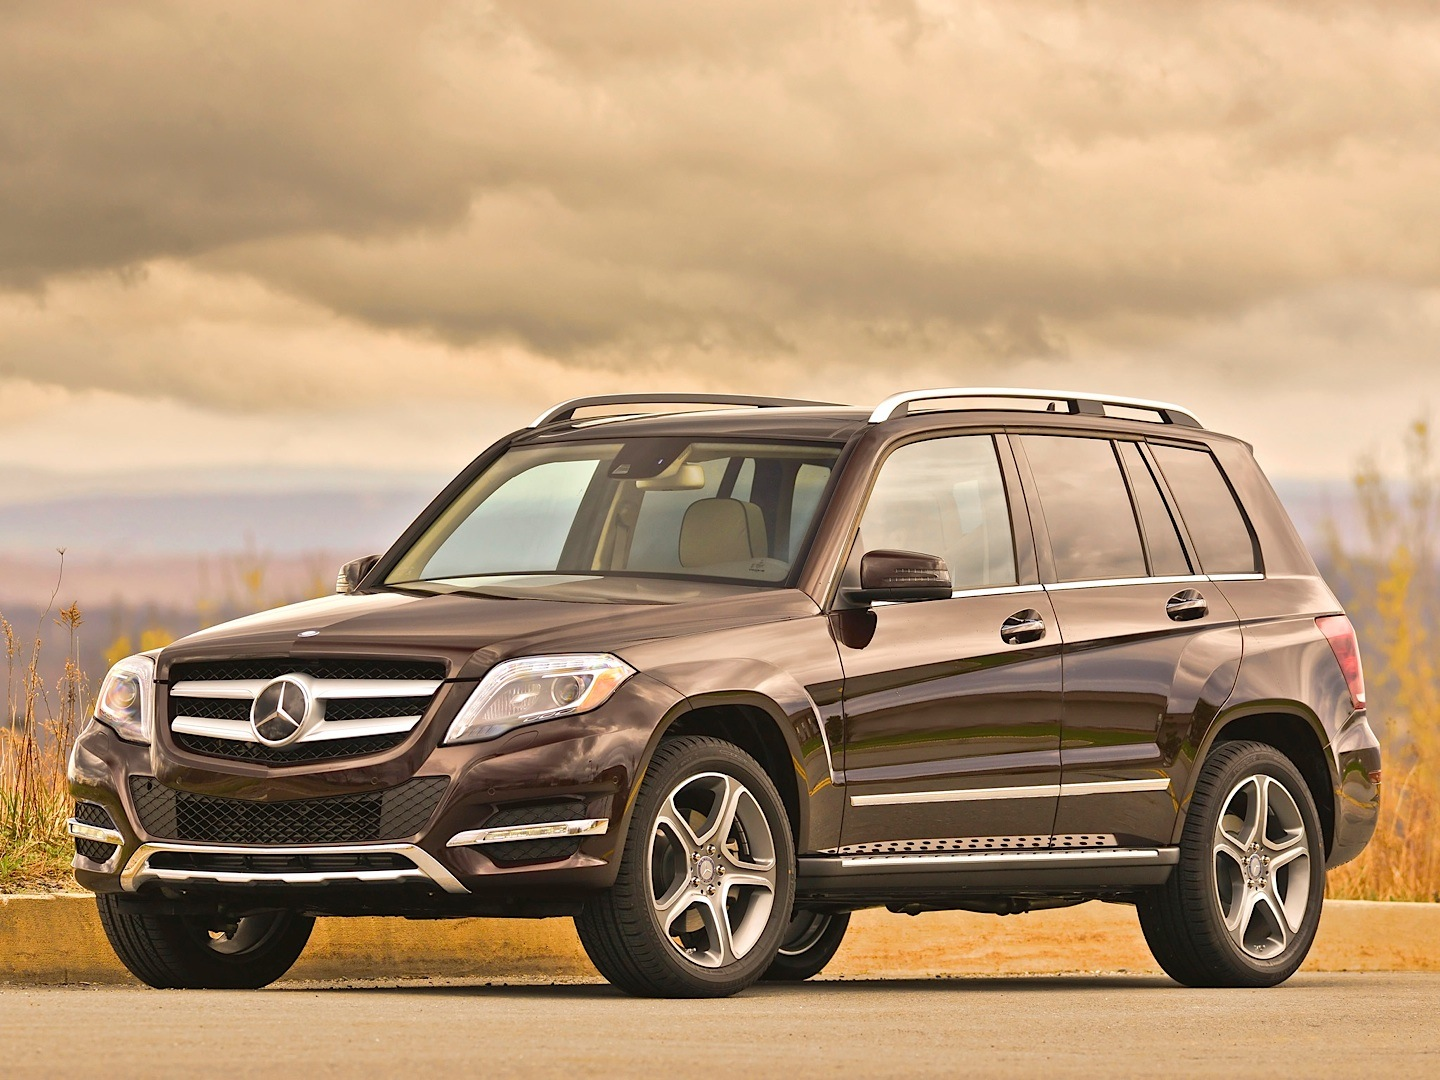 mercedes benz glk 250 bluetec gets reviewed by autoguide autoevolution. Black Bedroom Furniture Sets. Home Design Ideas